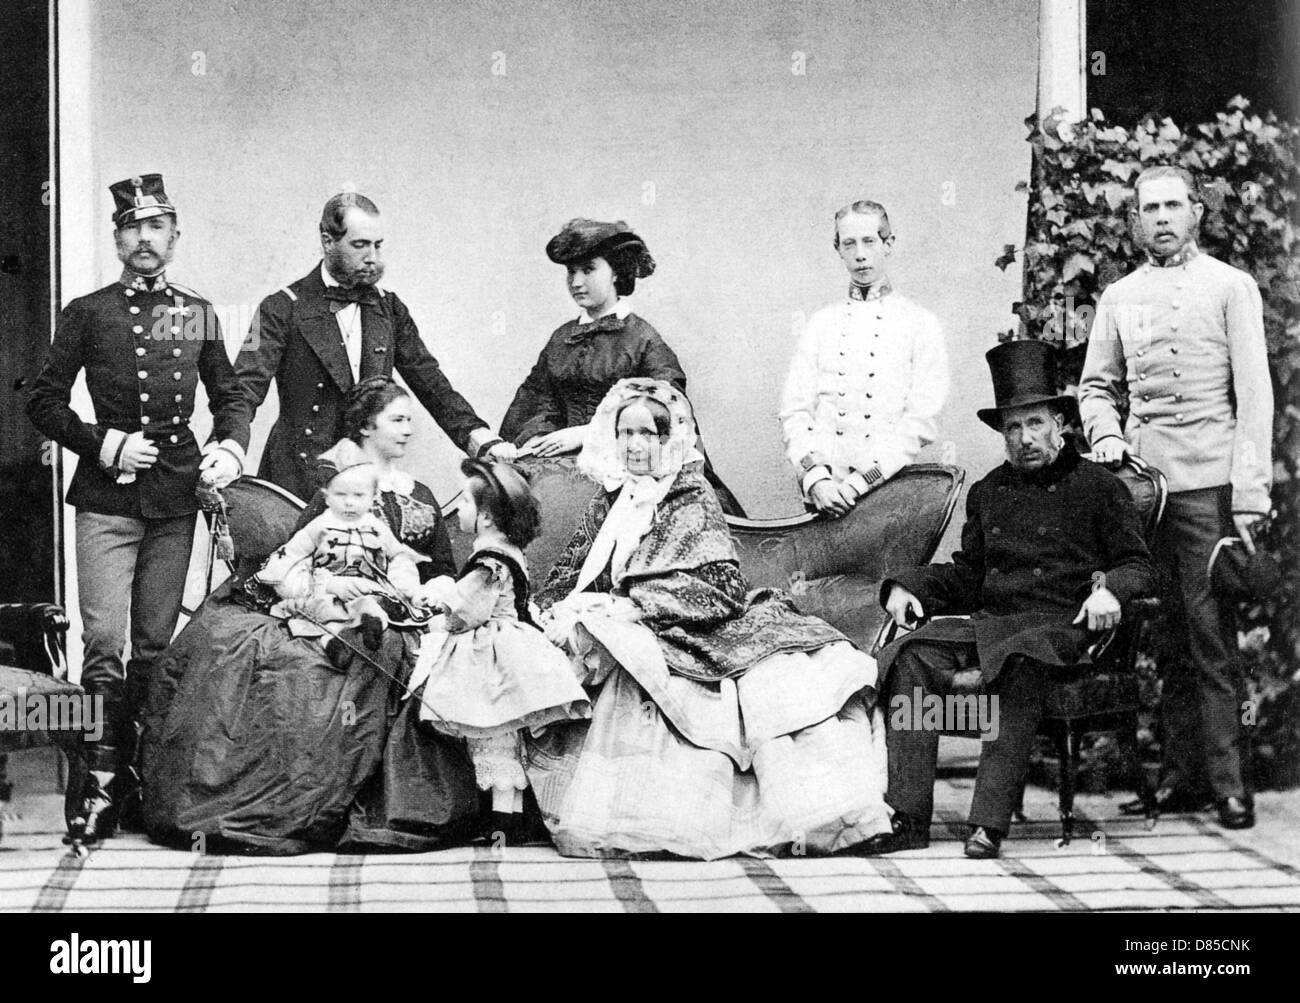 AUSTRO-HUNGARIAN HABSBURG FAMILY PORTRAIT at the Schonbrunn Castle about 1870 - see Description below for names - Stock Image